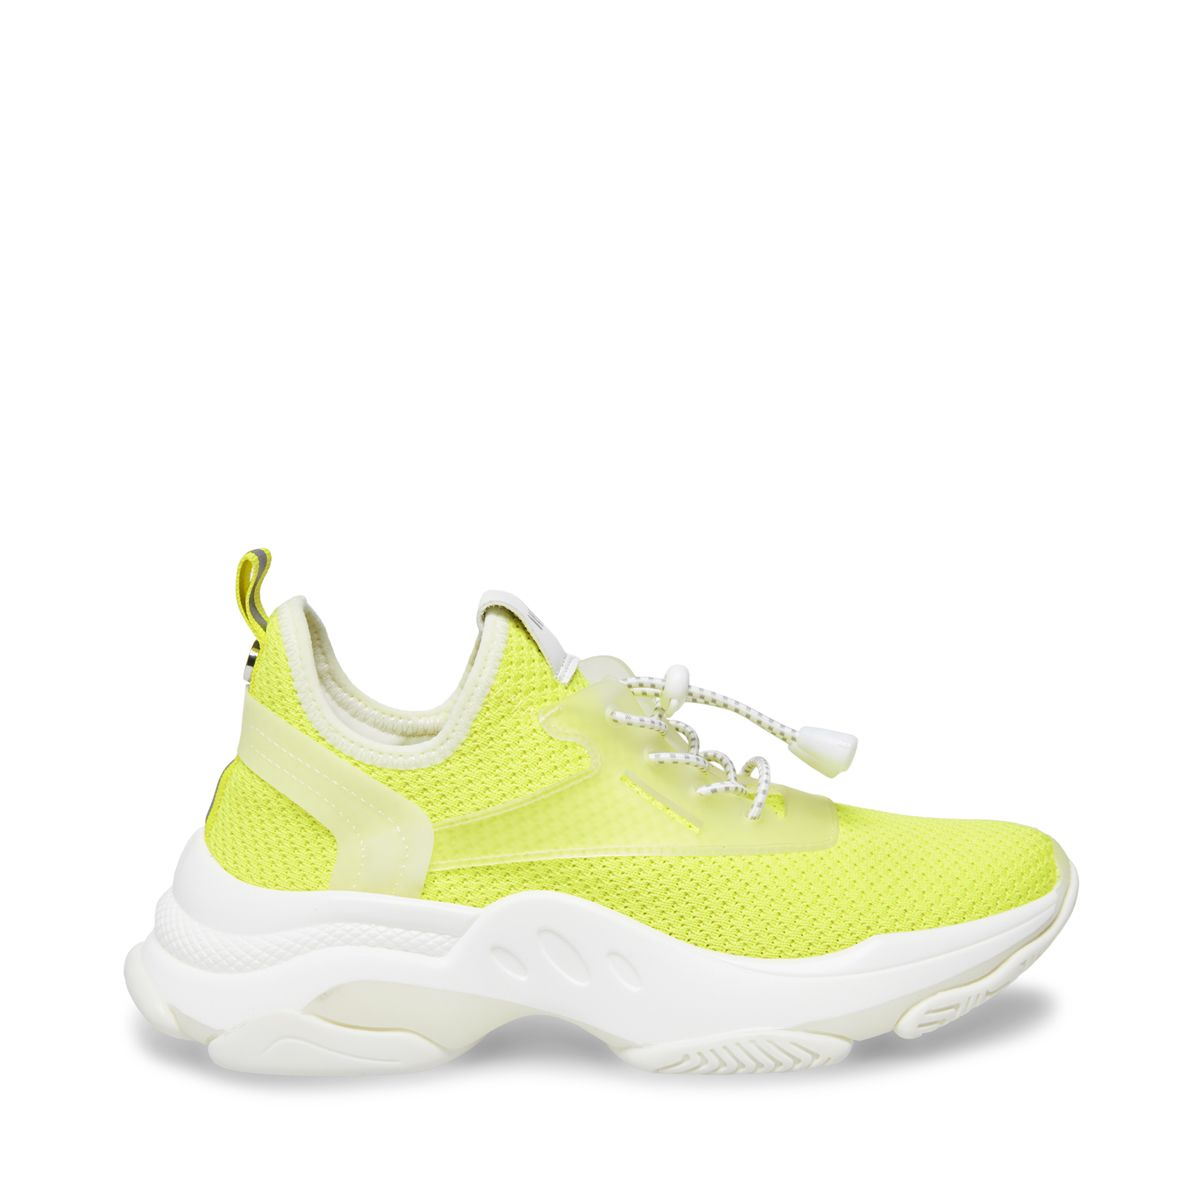 74115fa005a Steve Madden Women's Sneakers and Tennis Shoes - Macy's